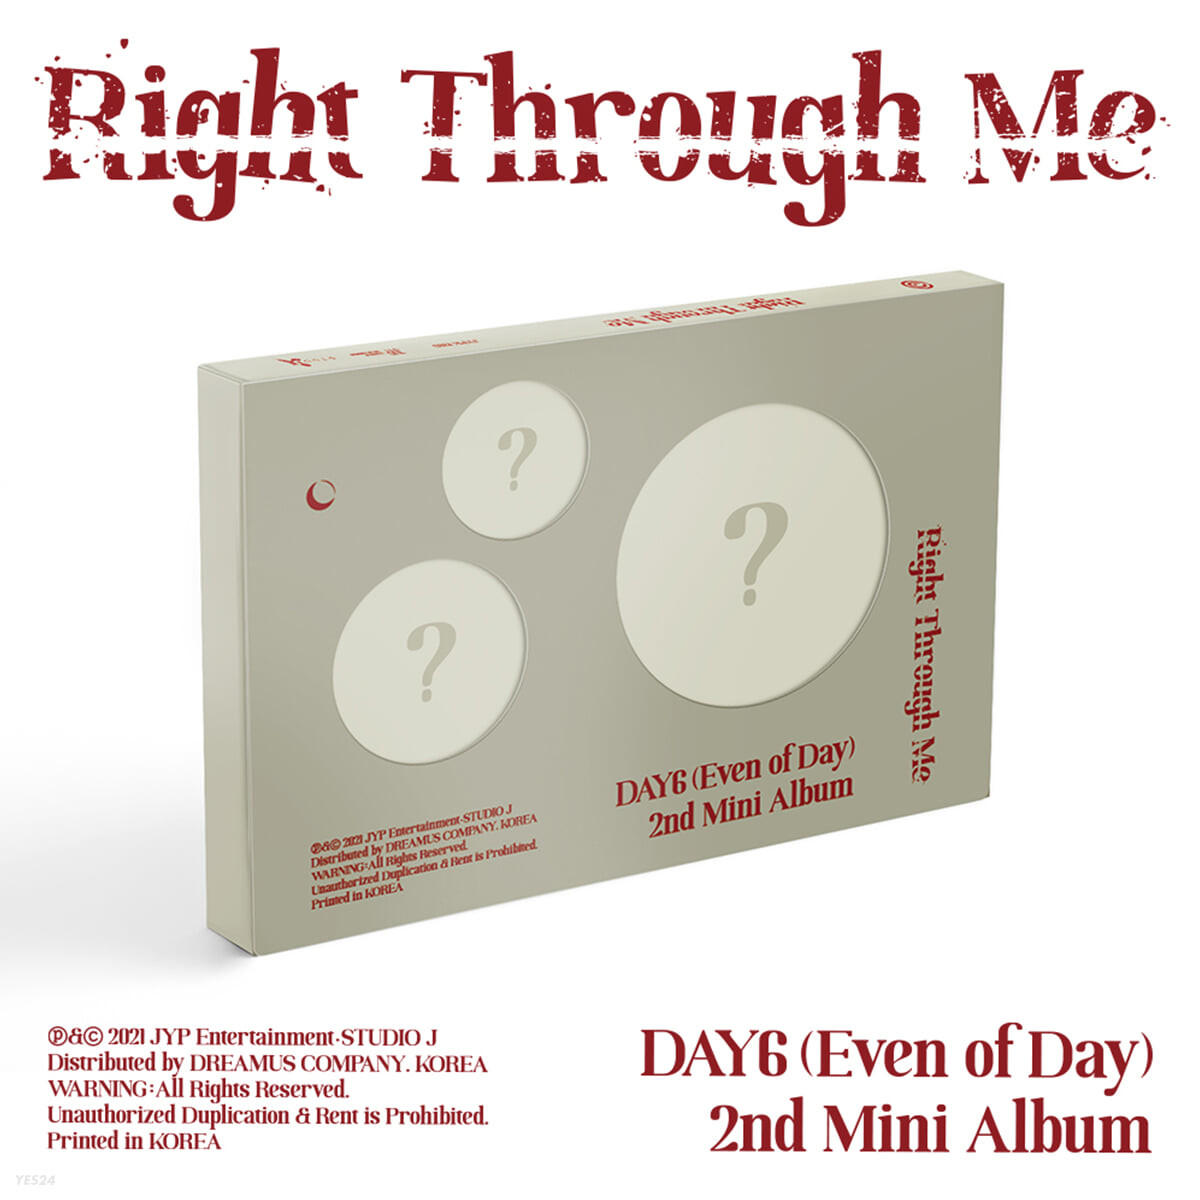 DAY6 (Even of Day) - Right Through Me - YES24